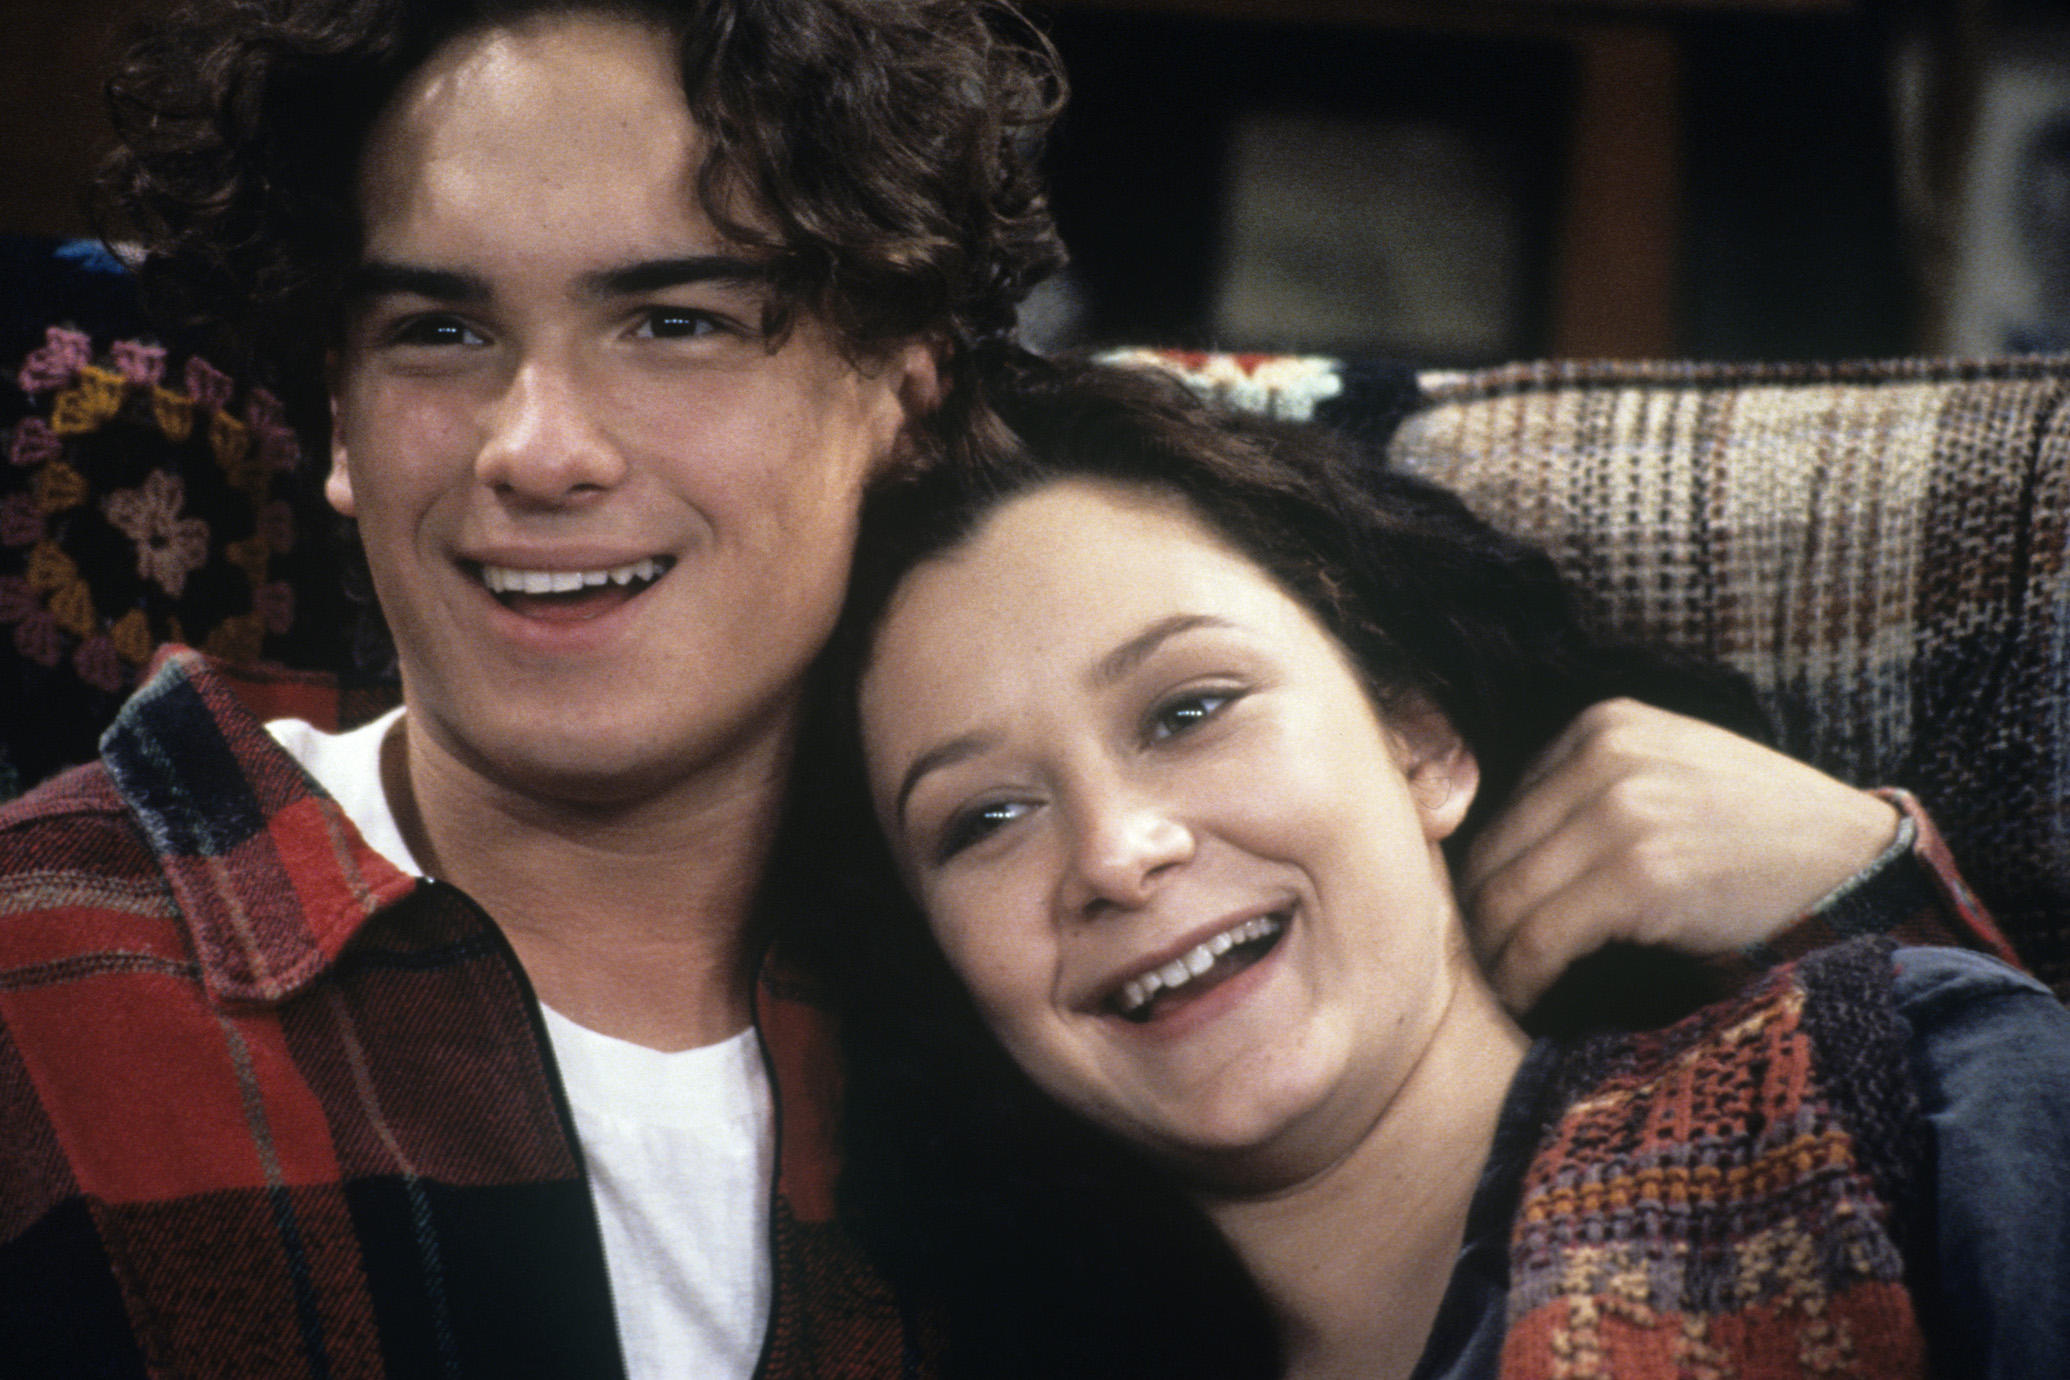 Johnny Galecki as David Healy and Sara Gilbert as Darlene Conner on Roseanne